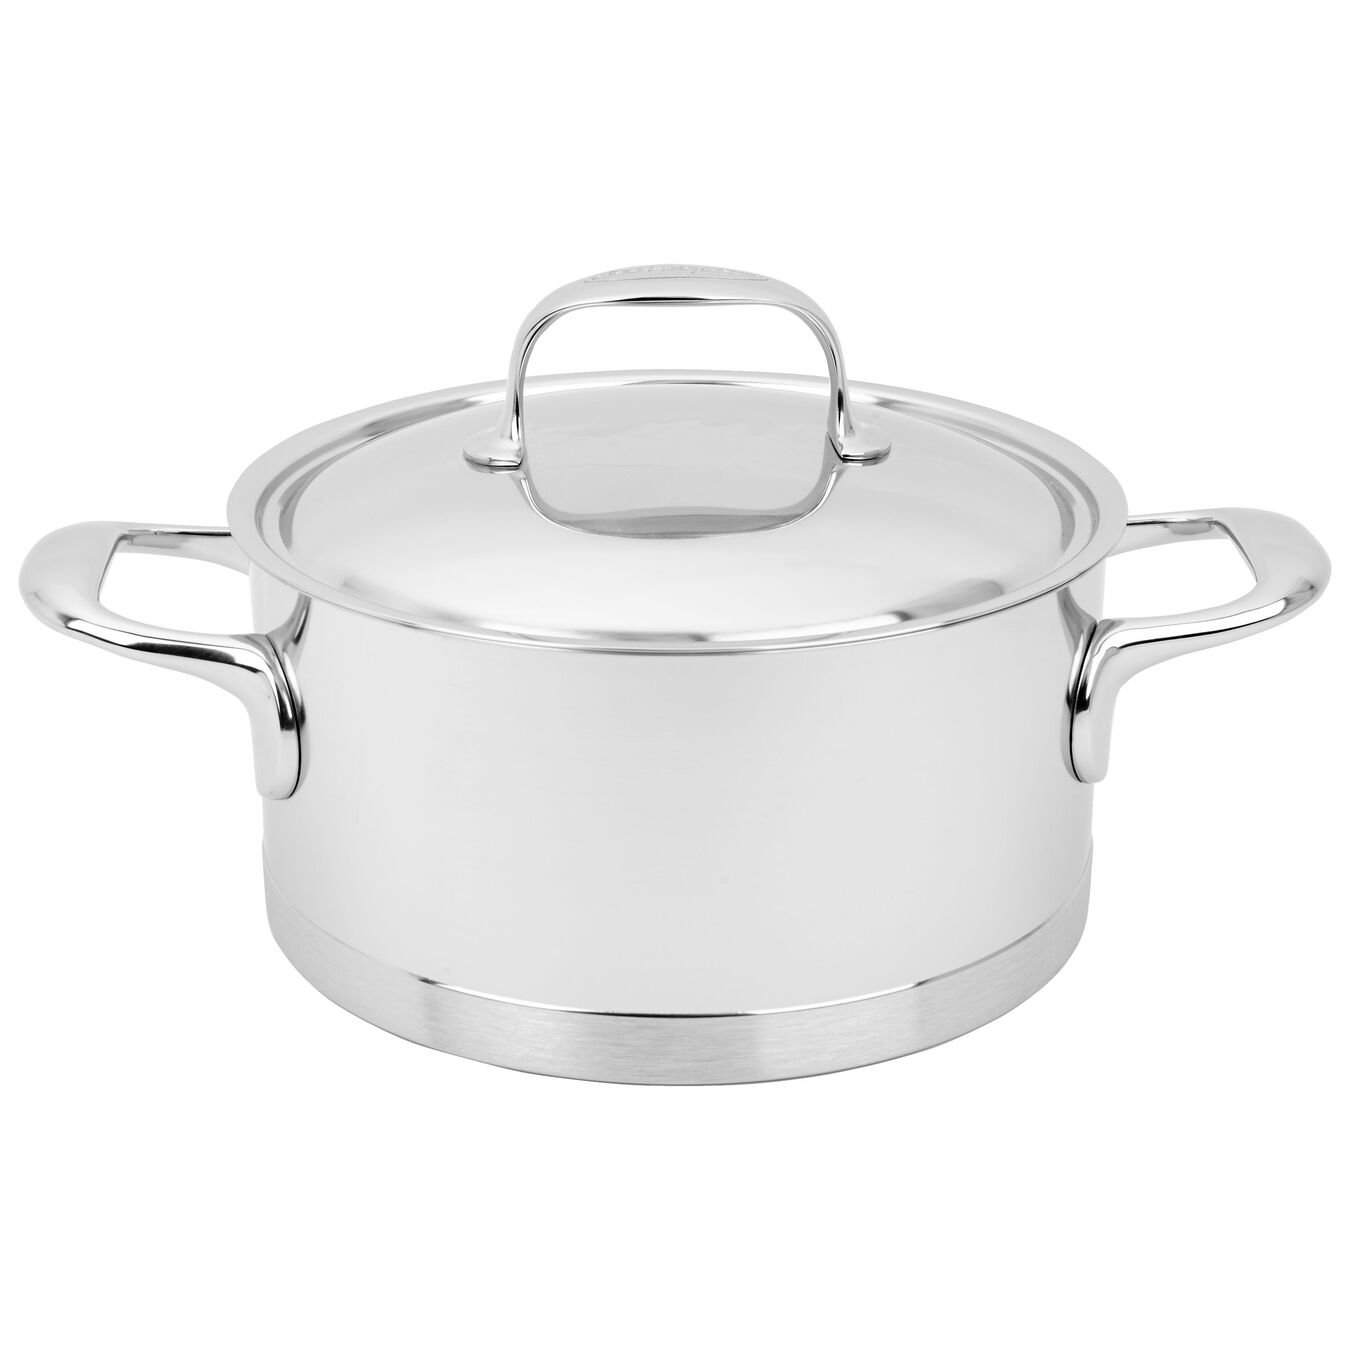 3 l 18/10 Stainless Steel Faitout with lid,,large 1